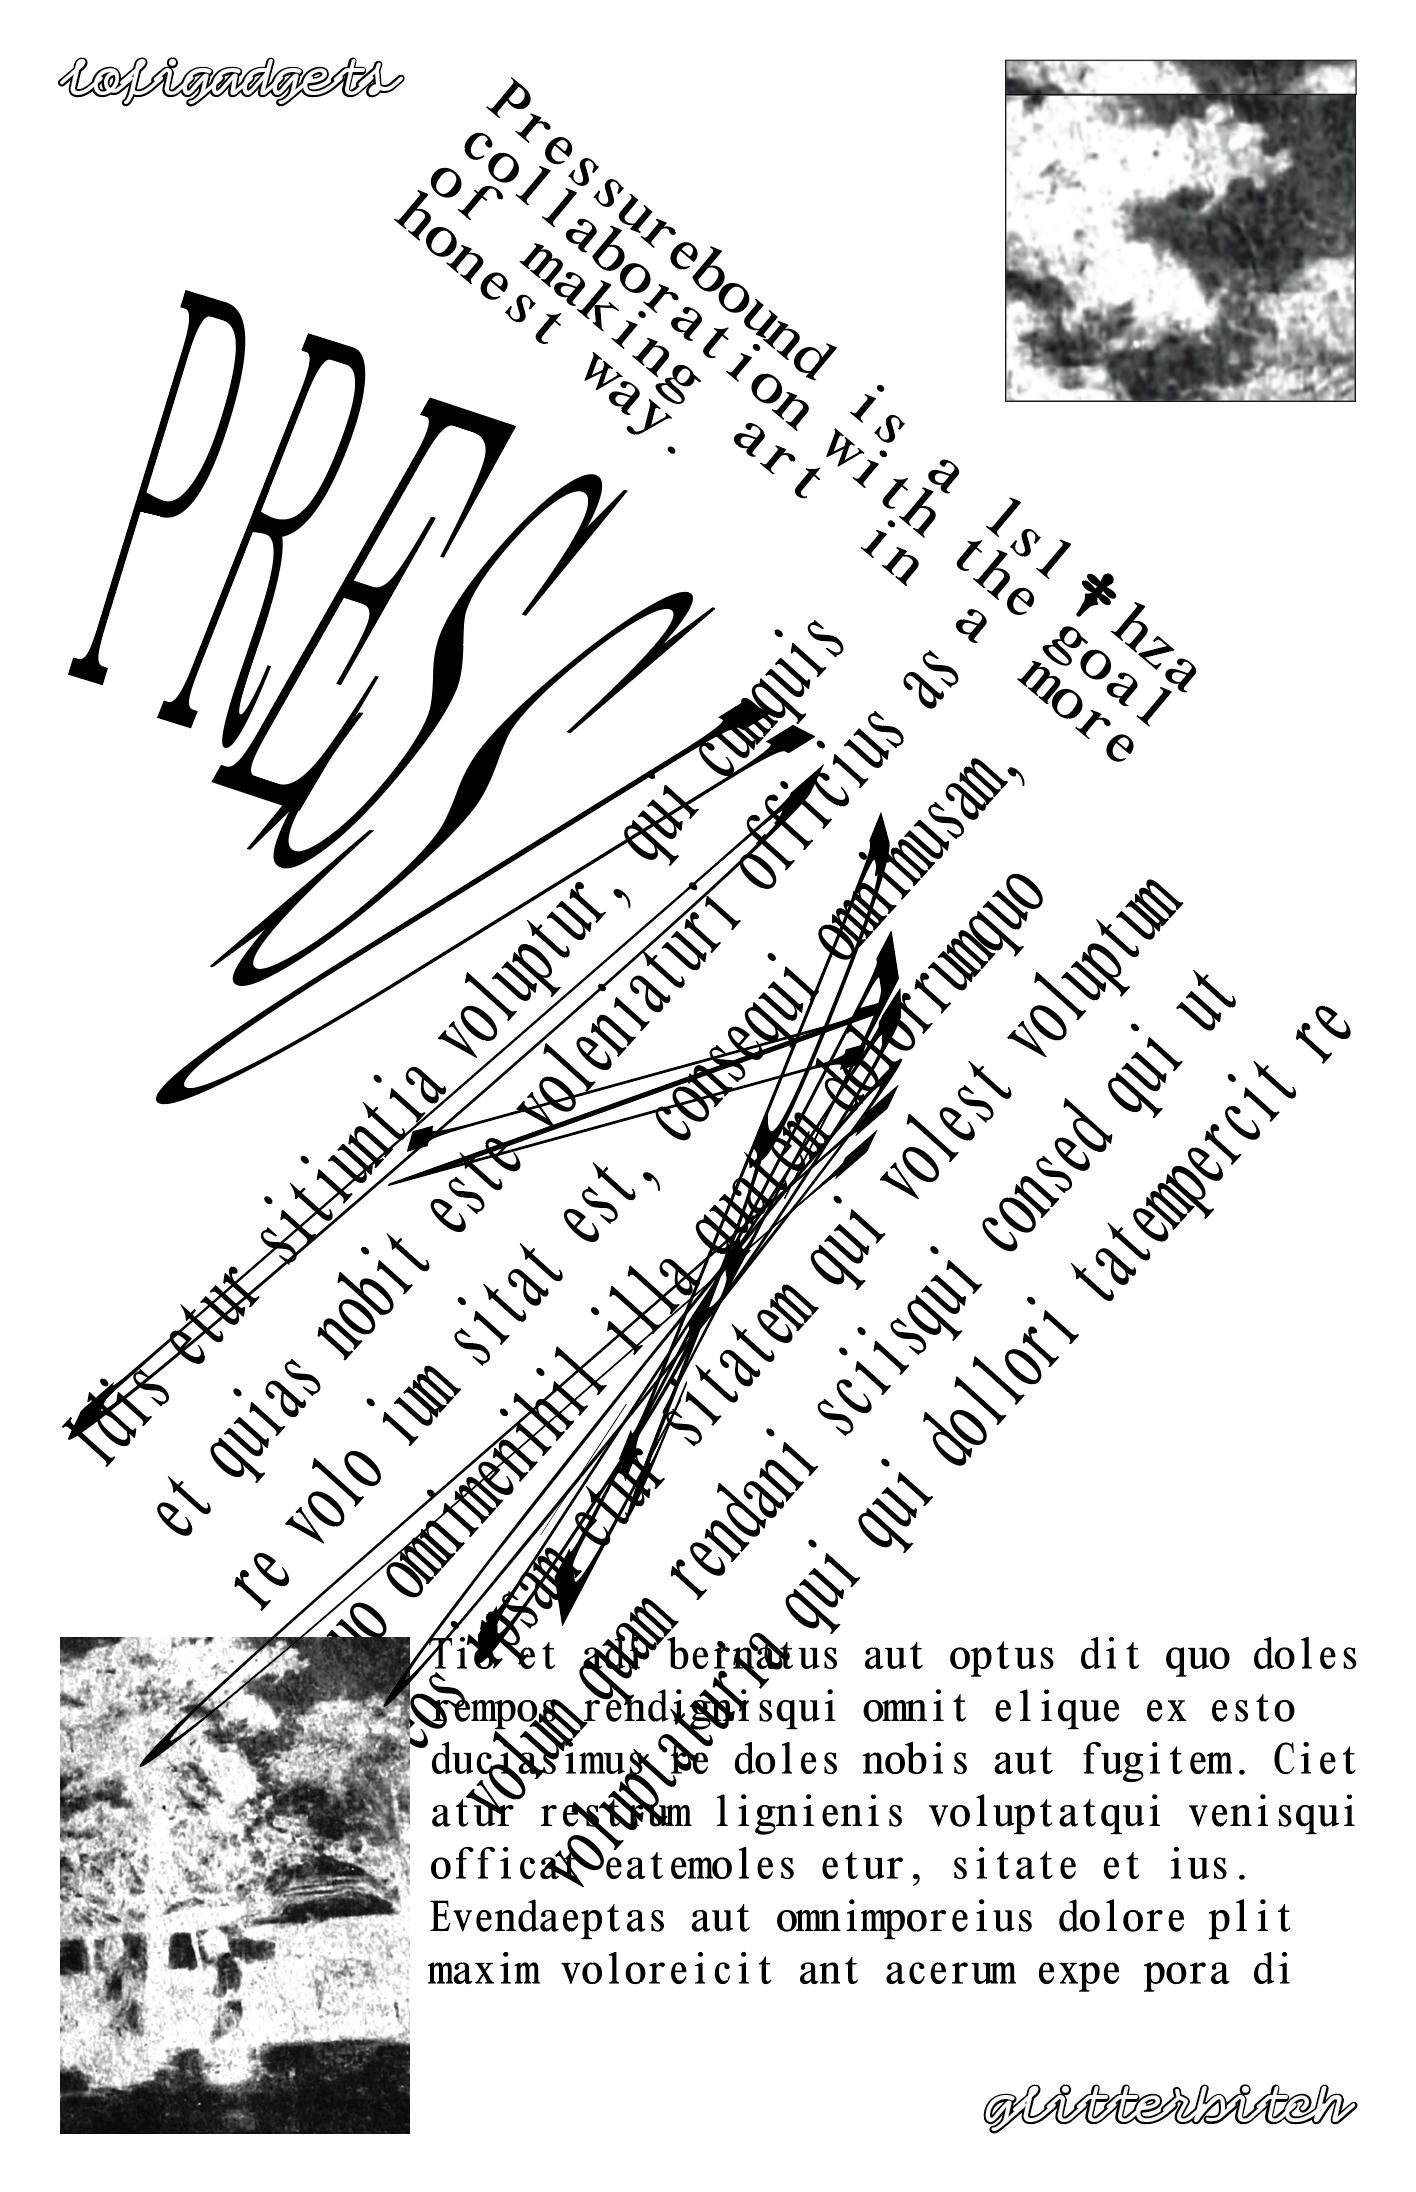 Screenshot of a draft of a poster, in black text/images on a white background. Two paragraphs of text sharply angled to form a 7-like diagonal composition, of which the uppermost paragraph reads 'Pressurebound is a lsl & hza collaboration with the goal of making art in a more honest way'. (The & is replaced with a dagger symbol.) The word 'PRESSUREBOUND' stretched tall and narrow, each letter increasingly dramatically angled. At the top and bottom of the composition are snippets of an unidentifiable image and some filler text.